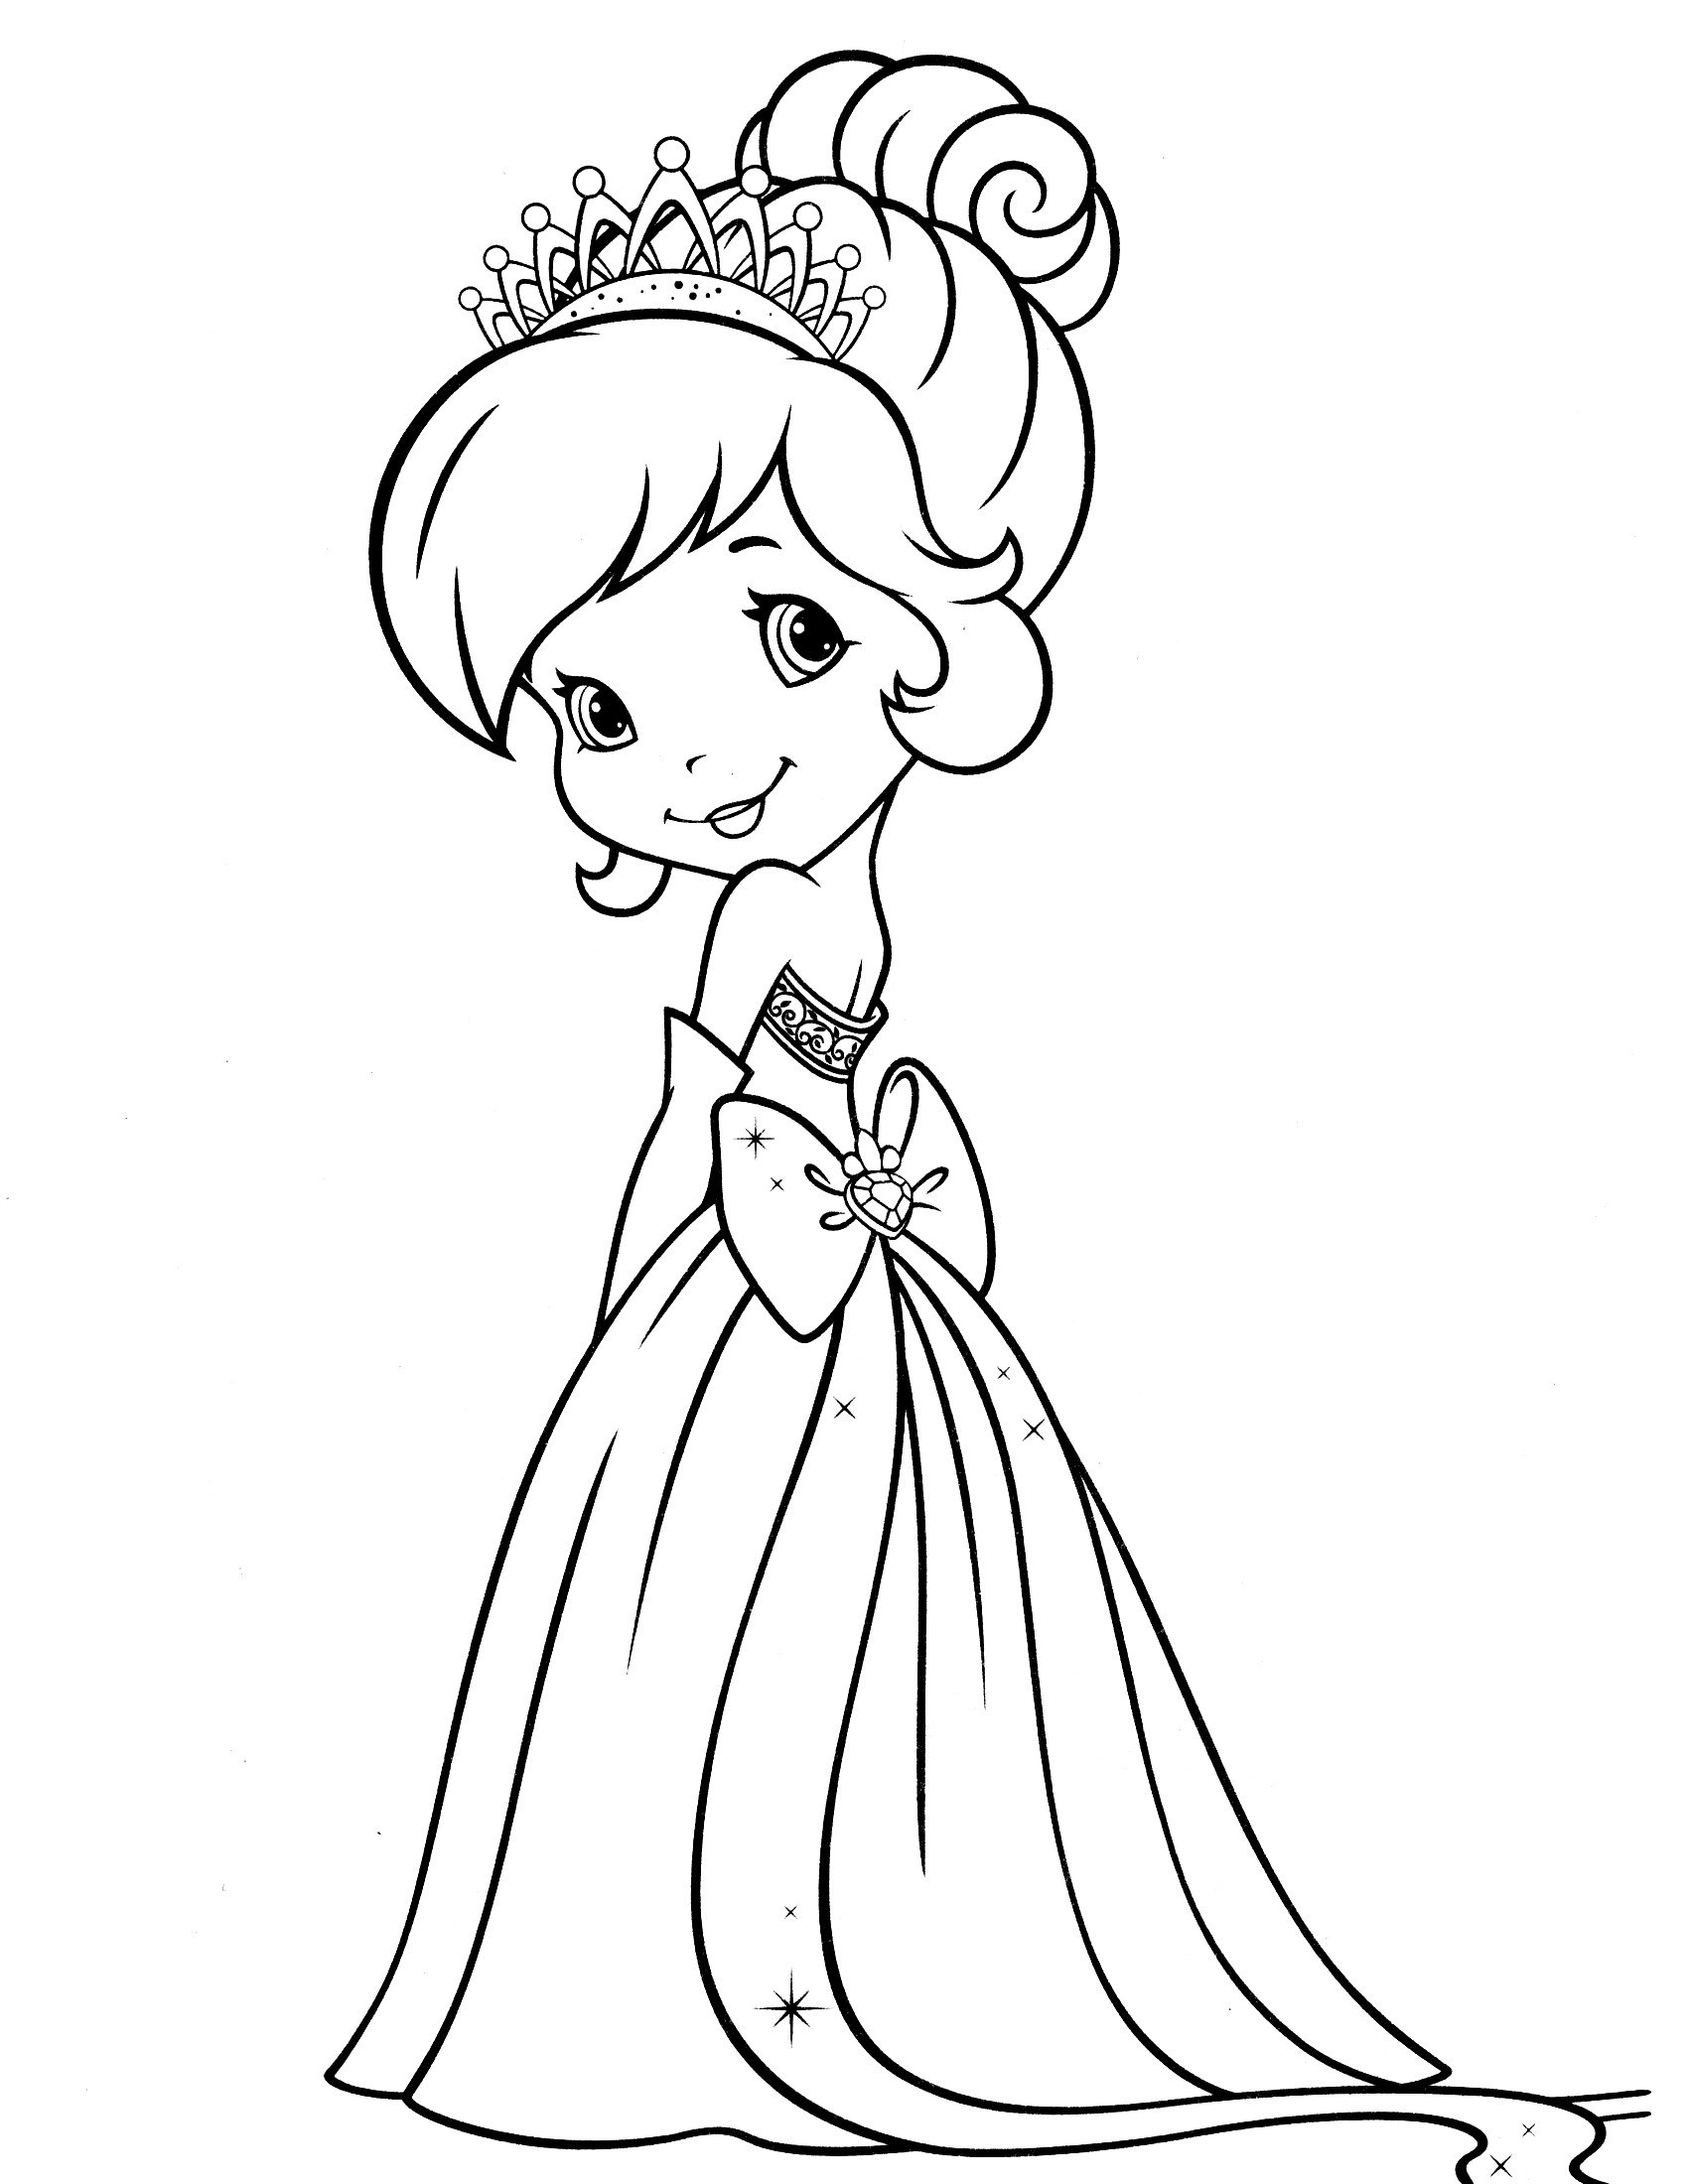 Strawberry Shortcake Coloring Page  Strawberry Shortcake Coloring Pages Bestofcoloring